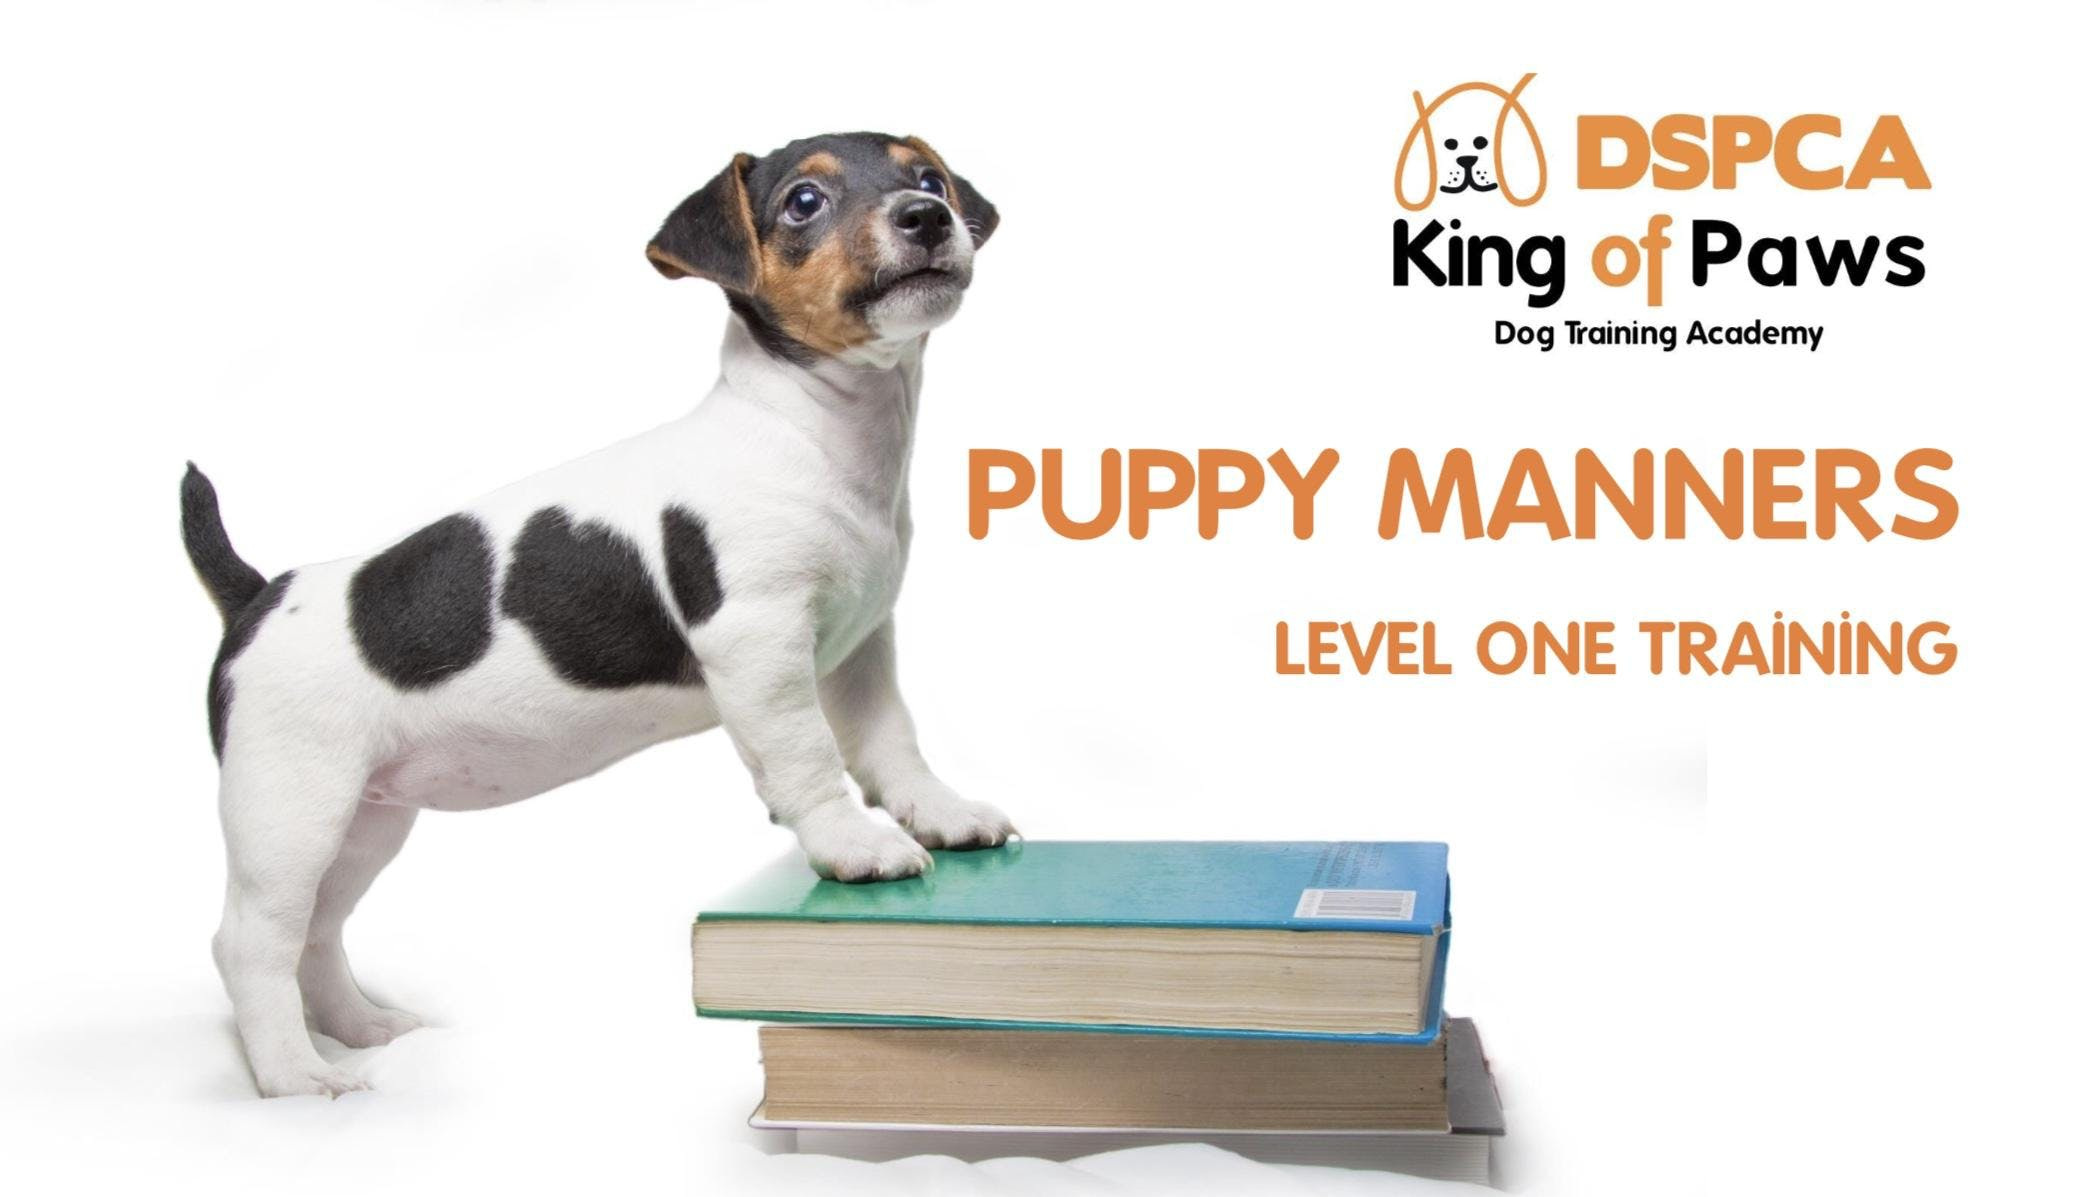 PUPPY MANNERS (LEVEL 1) Thursday DSPCA